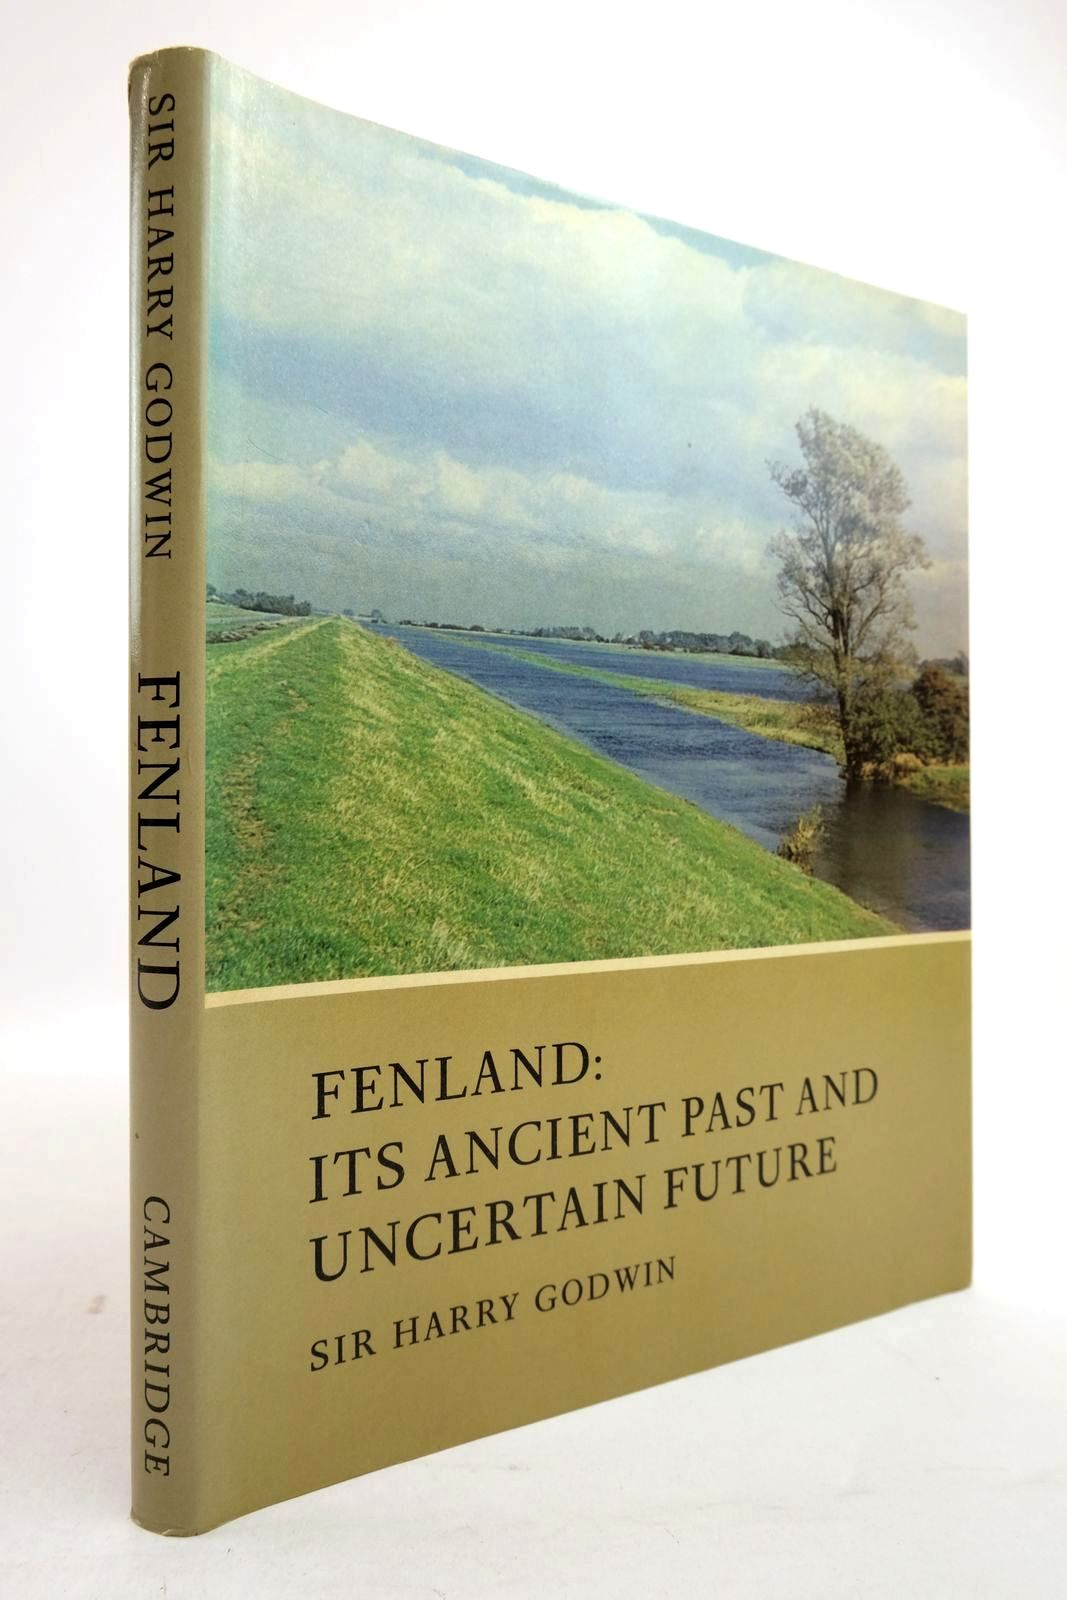 Photo of FENLAND: ITS ANCIENT PAST AND UNCERTAIN FUTURE- Stock Number: 2134471